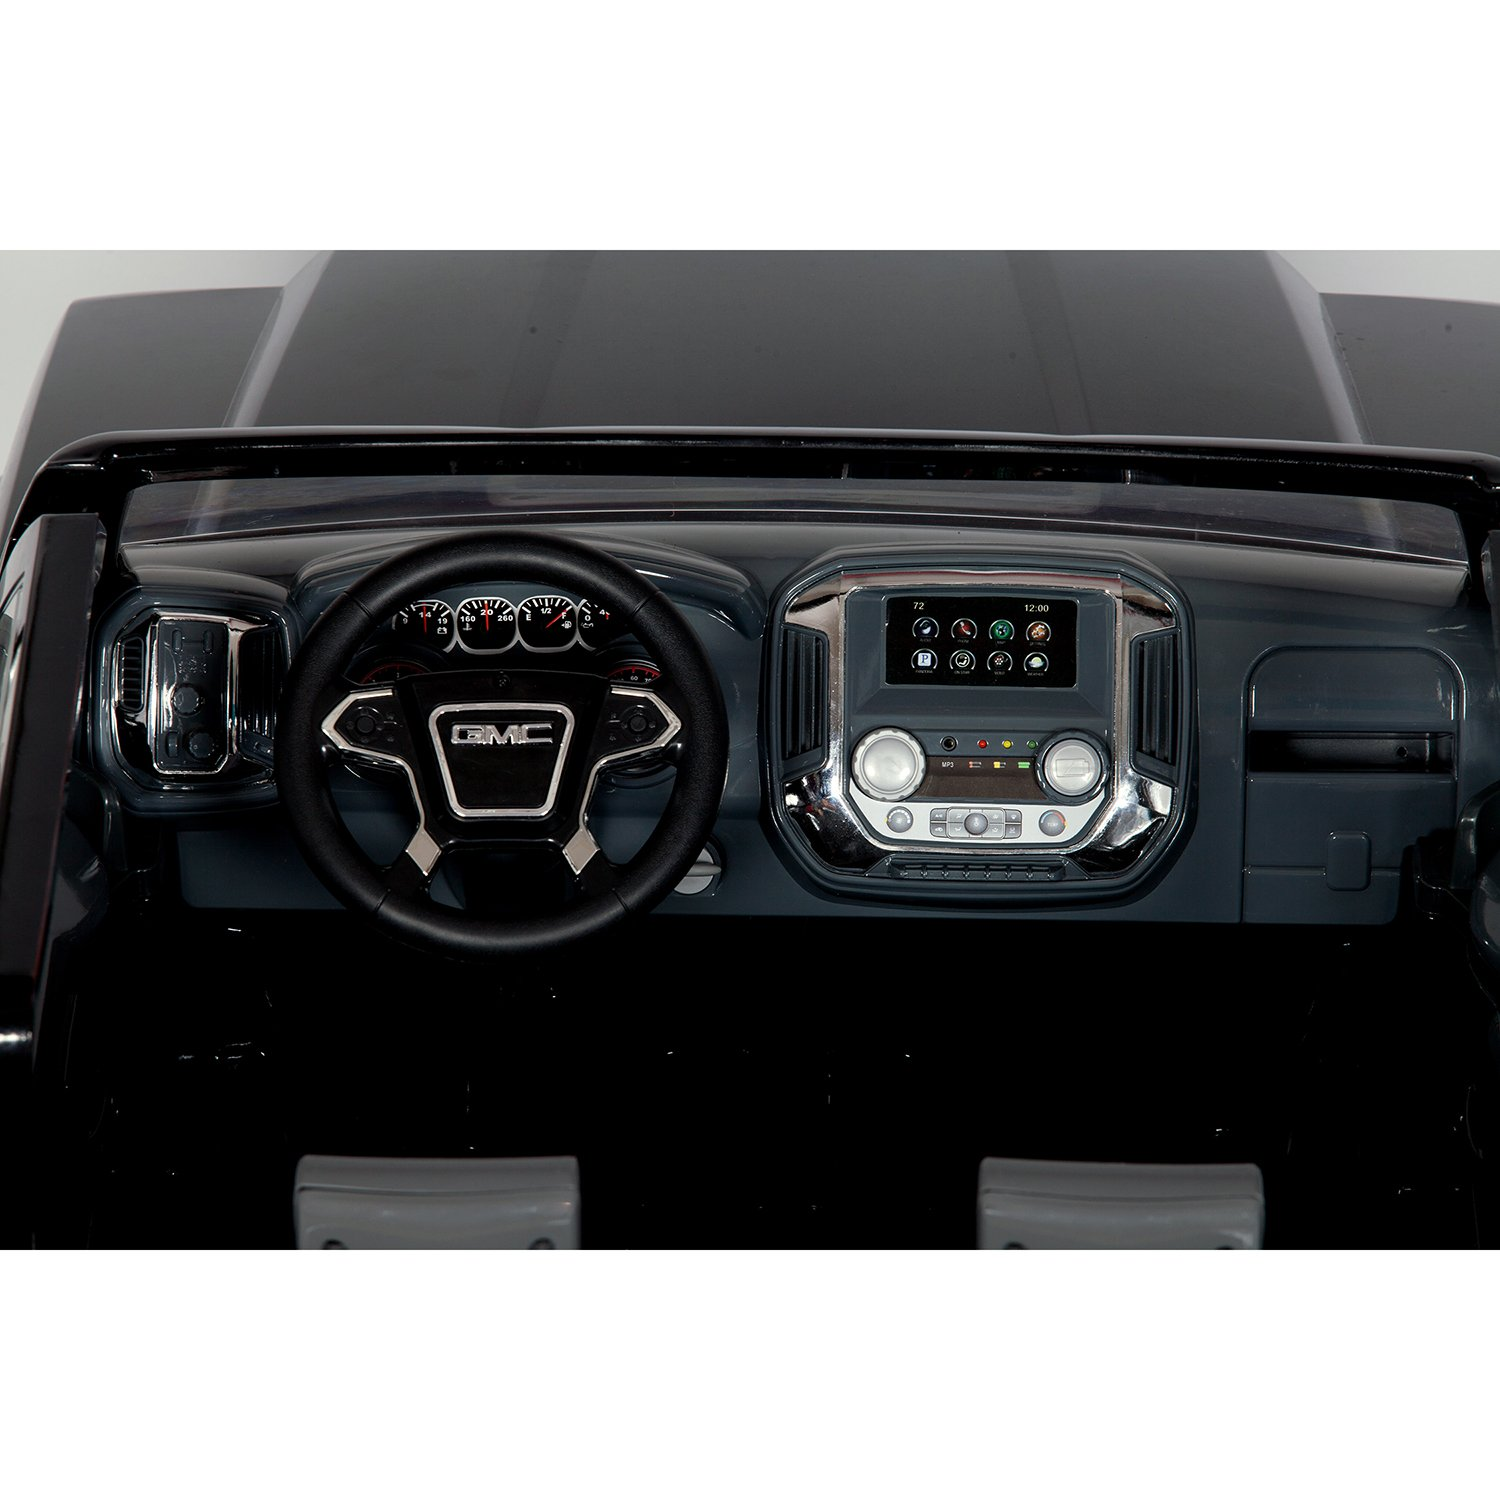 Rollplay GMC Sierra Denali 12-Volt Battery-Powered Ride-On, Black by Rollplay (Image #5)